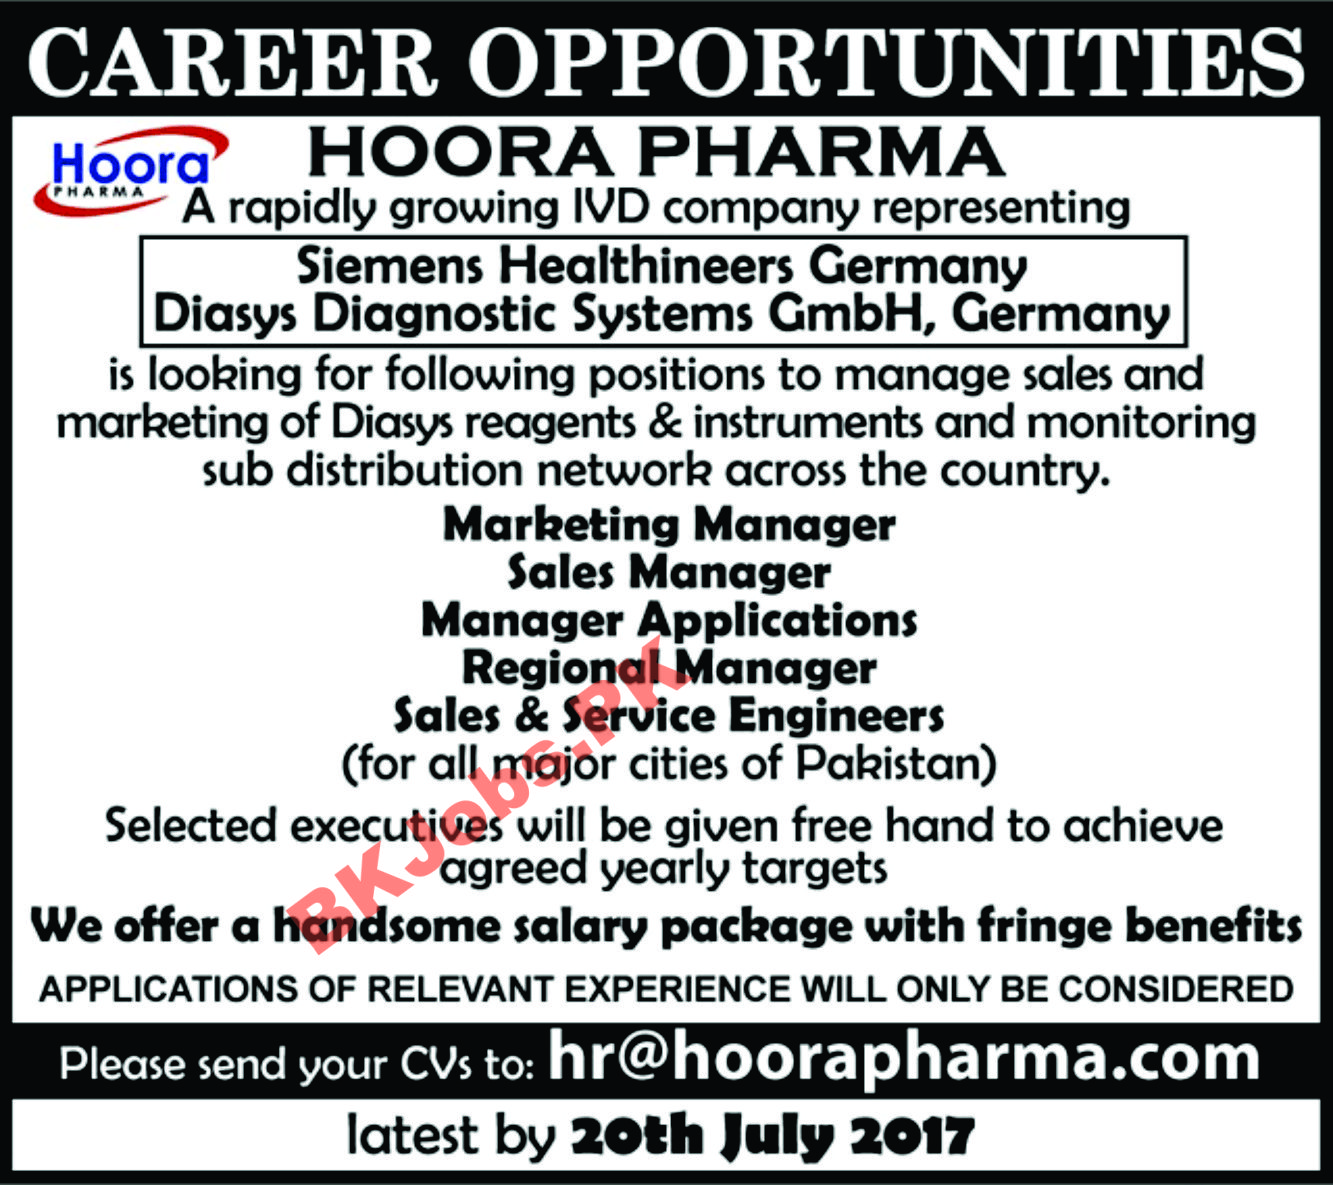 Hoora Pharma Ivd Company Germay Jobs For Sub Distribution